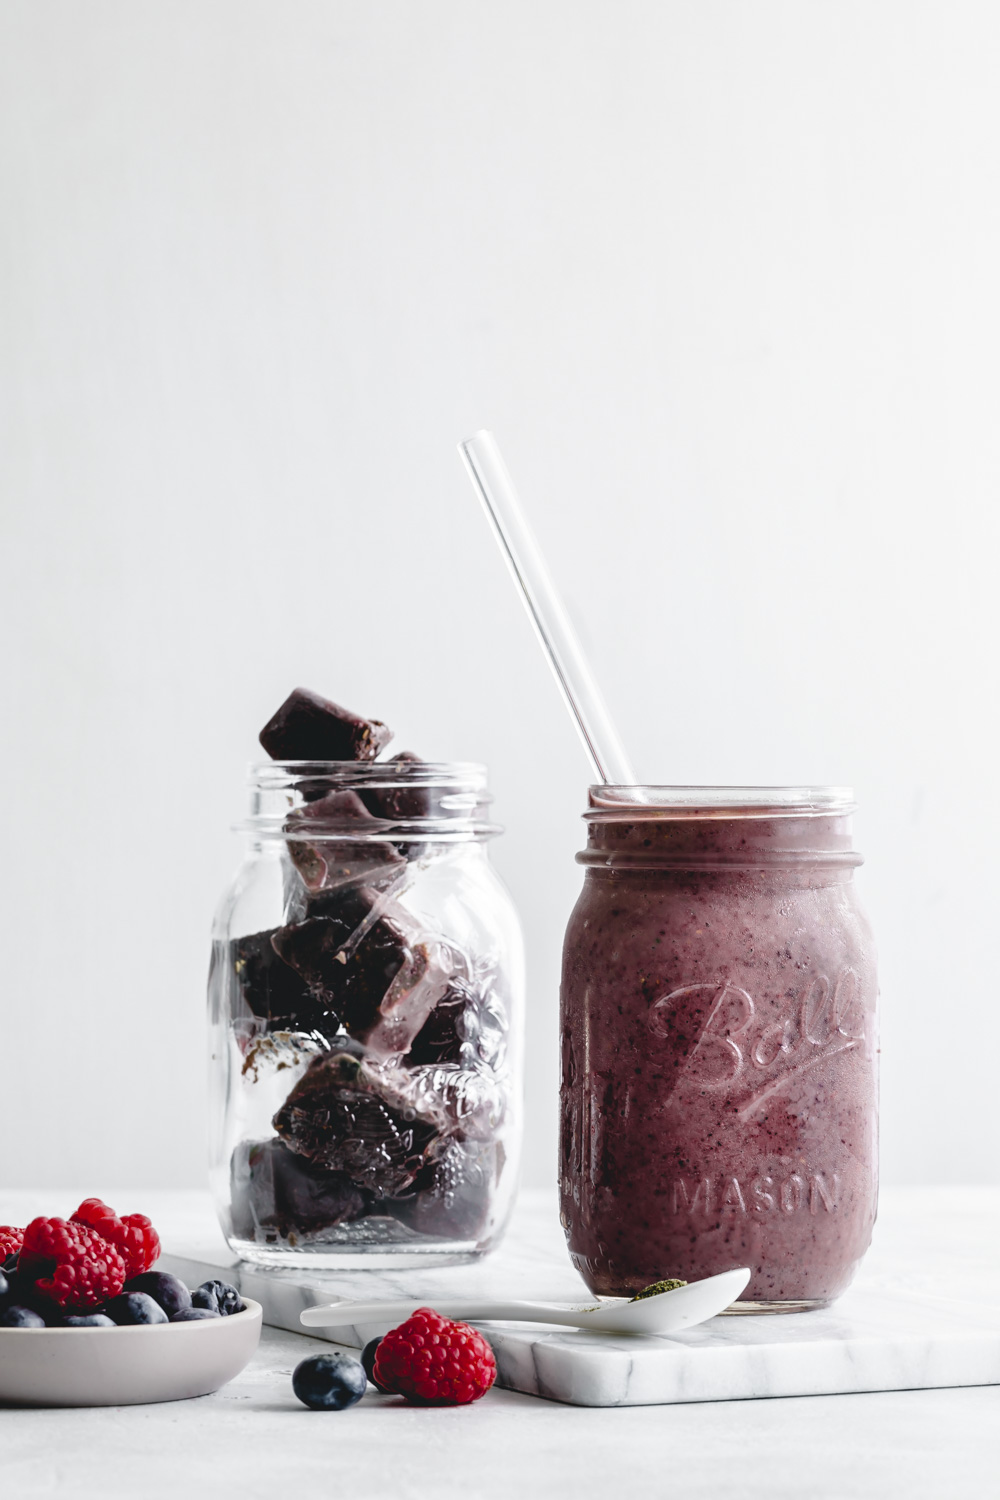 Frozen smoothie cubes in a glass next to a smoothie with a straw